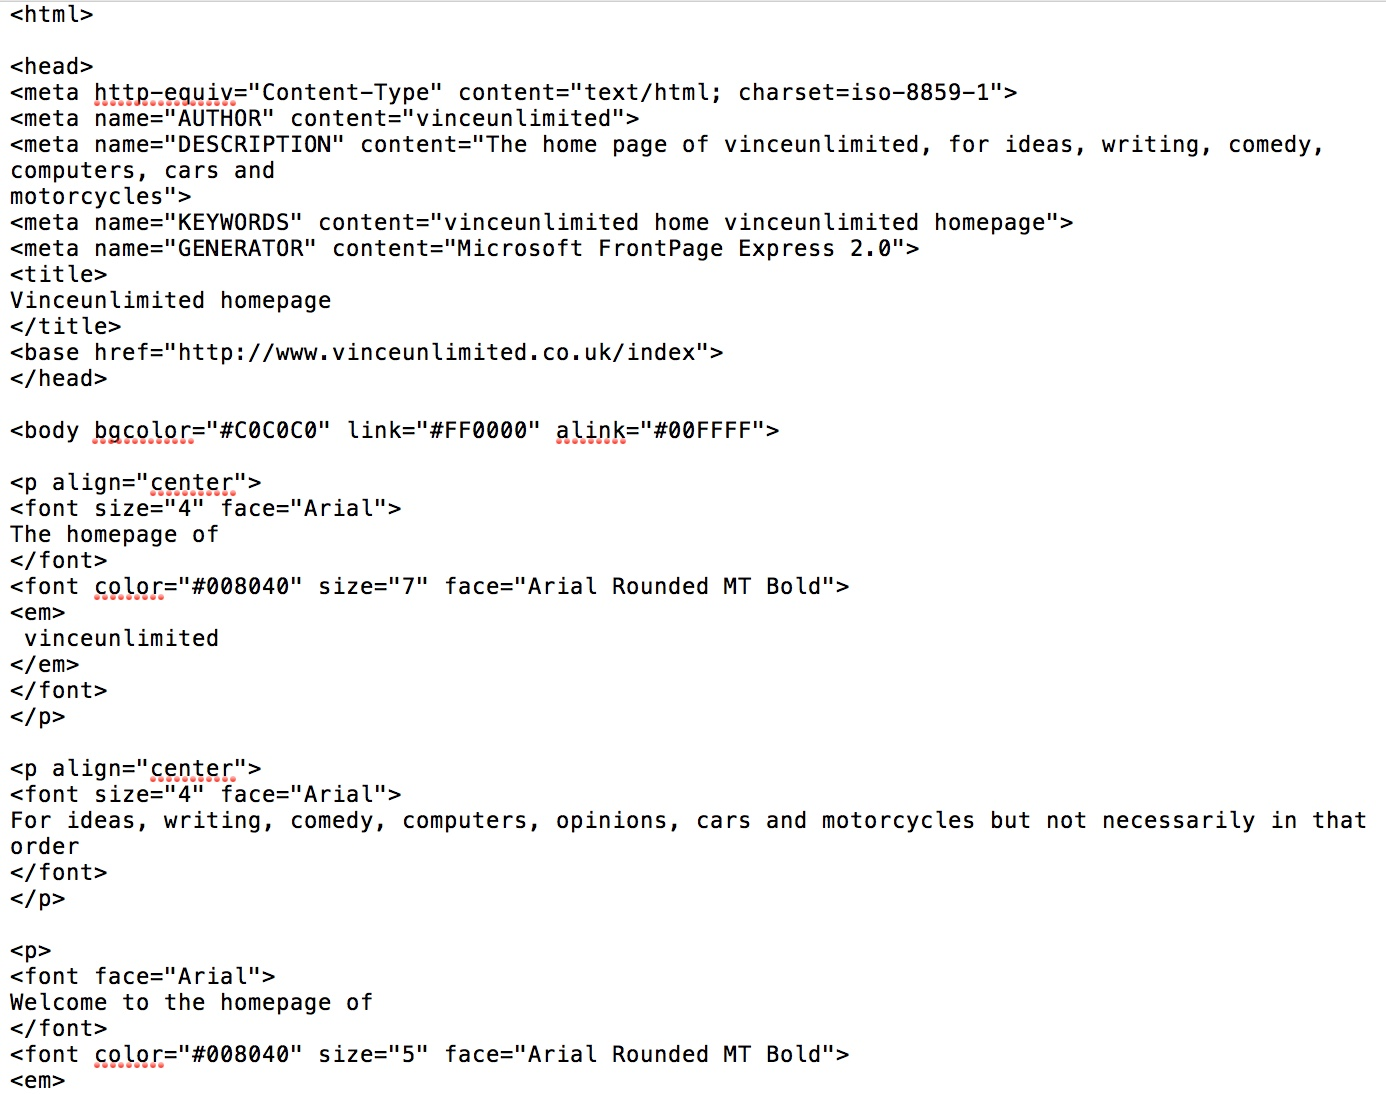 Textedit extract from vinceunlimited html home web page